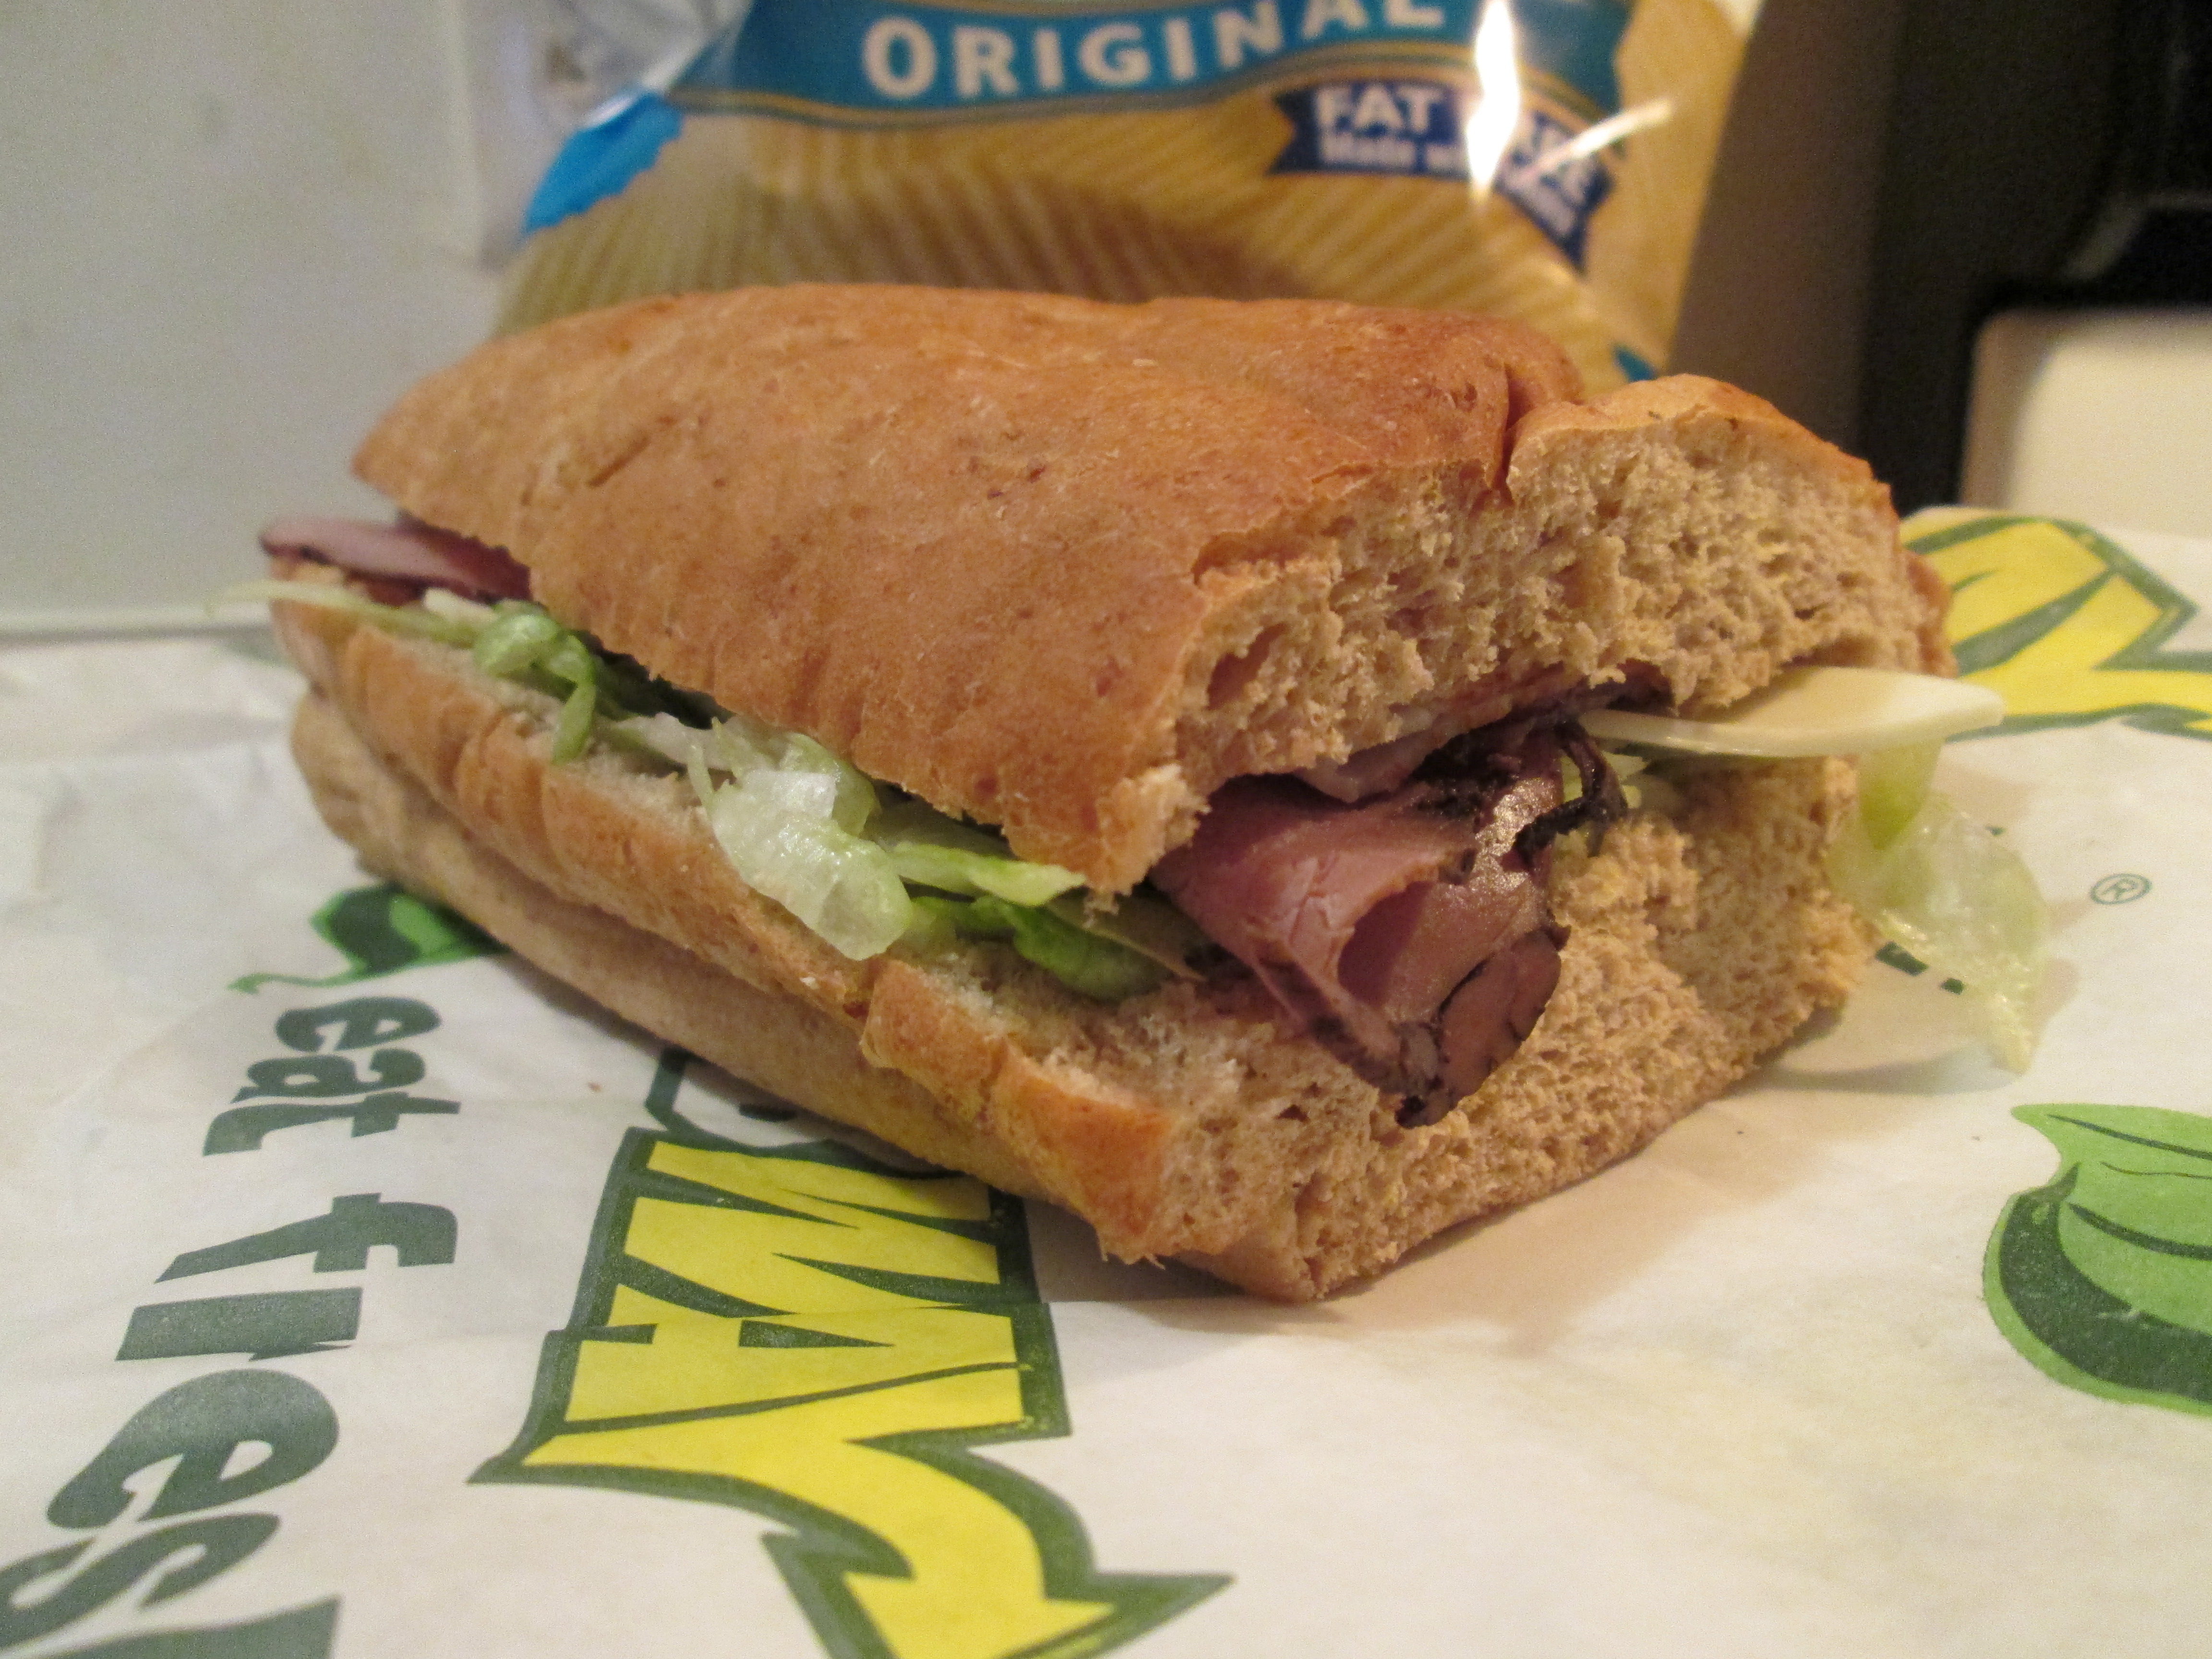 subways problem for breakfast market Subway is no longer requiring franchisees to serve breakfast, eight years after introducing the morning meals according to bloomberg, the market-research firm field agent found that 43% of subway customers do not visit for breakfast, and 19% did not even know the chain served breakfast.